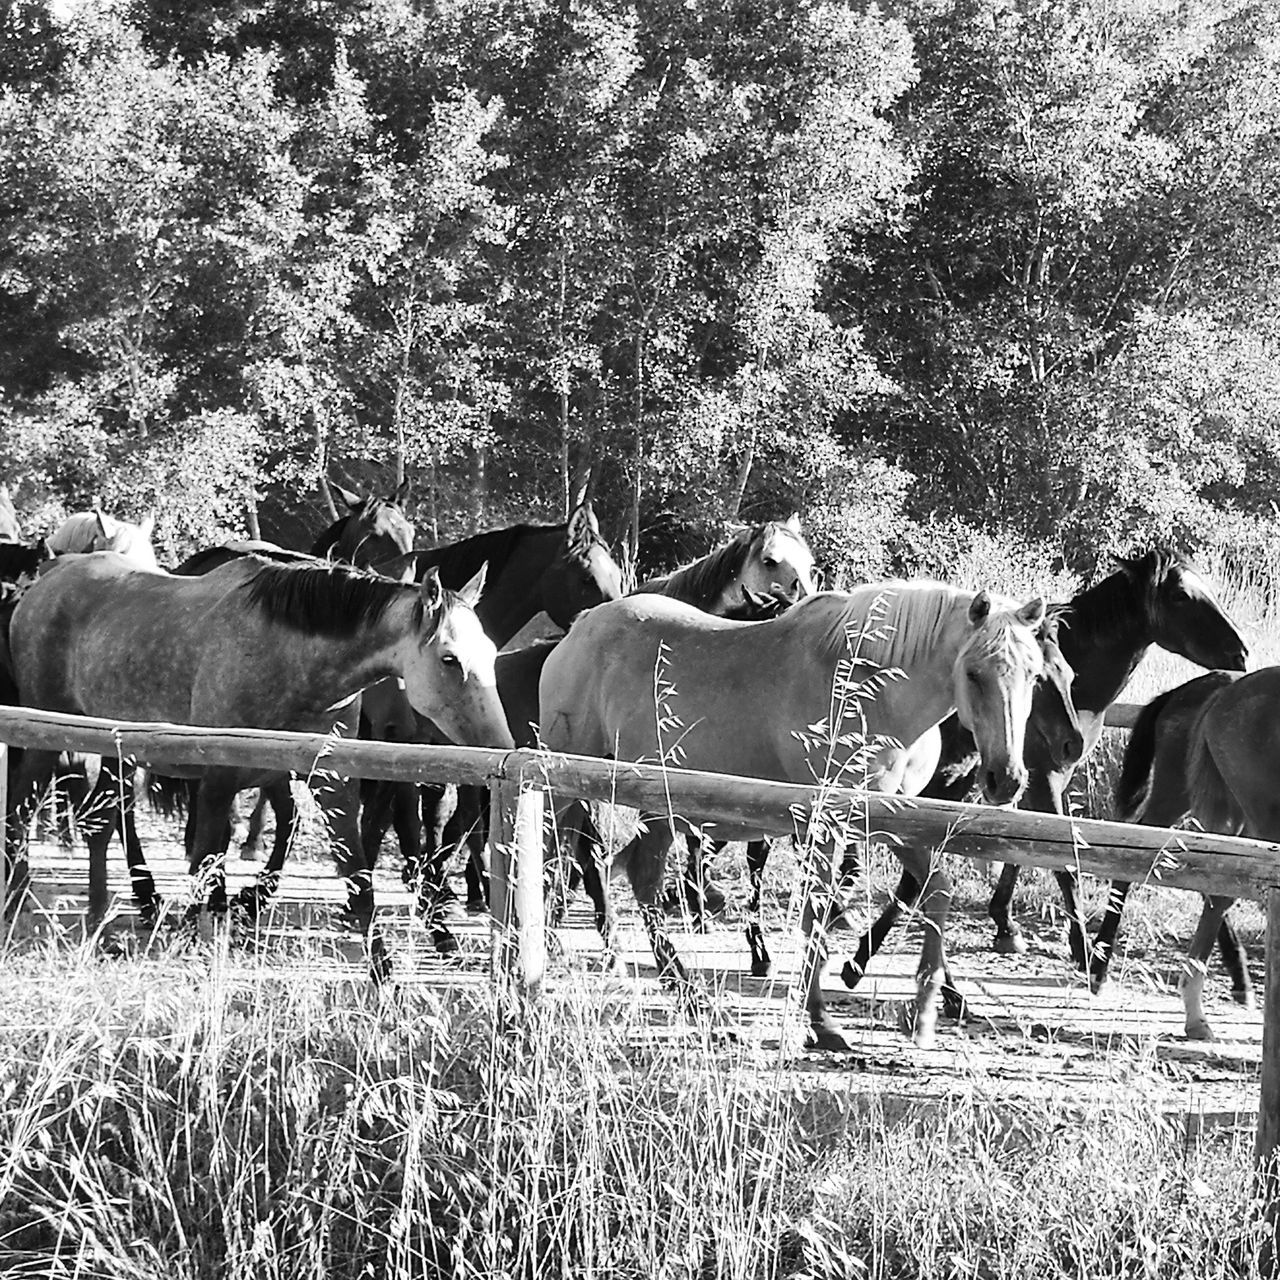 domestic animals, mammal, animal themes, livestock, horse, field, cow, tree, cattle, grass, outdoors, nature, day, growth, standing, no people